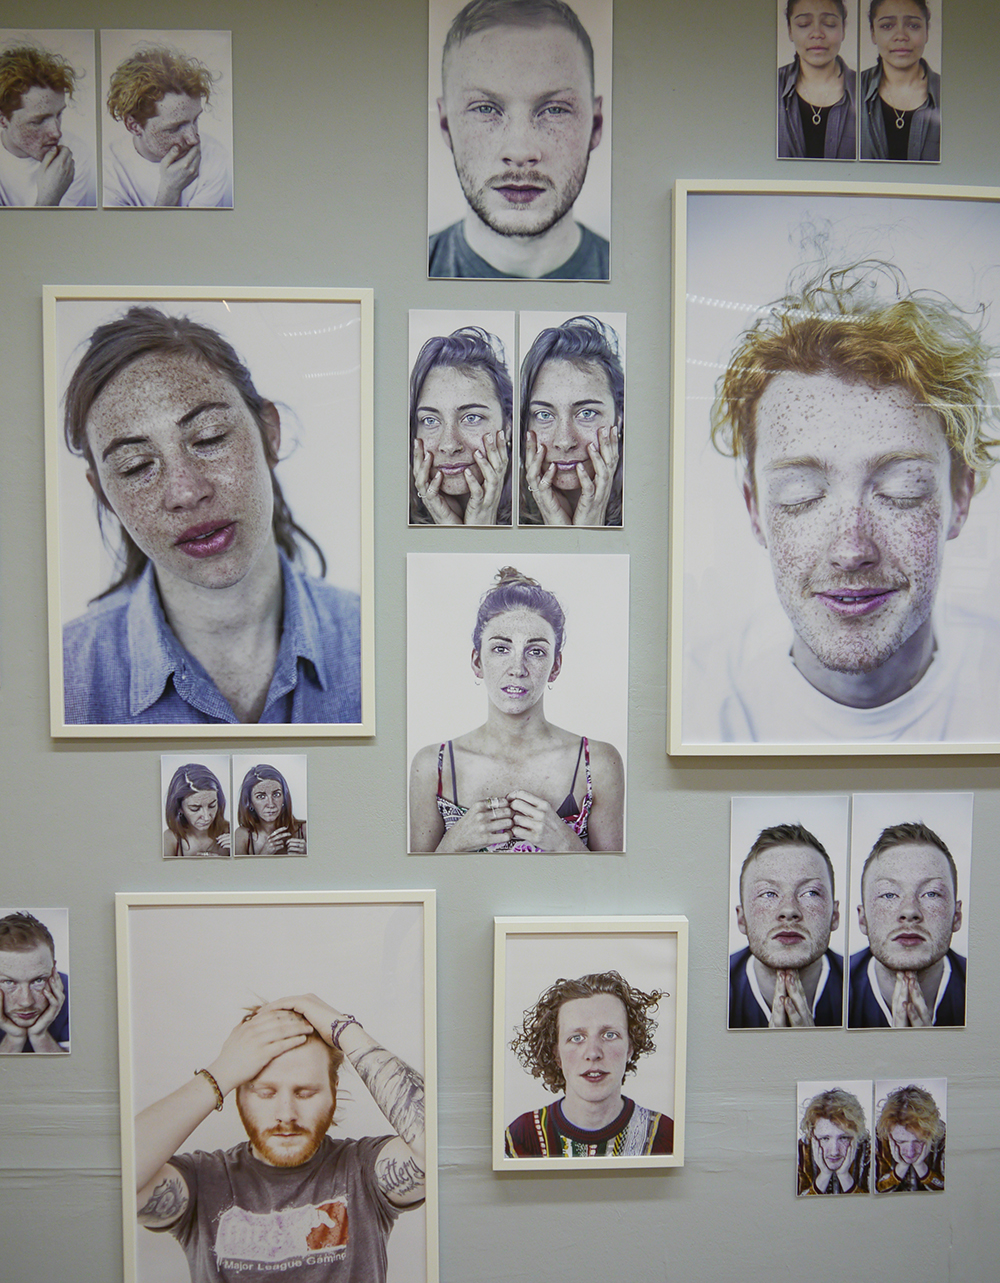 Top Five, best bits, degree show picks, dundee, Dundee blogger, Scottish blogger, Scottish art school, Fine Art, photography, portrait photography, natural light photography, faces with freckles, red heads, curly hair